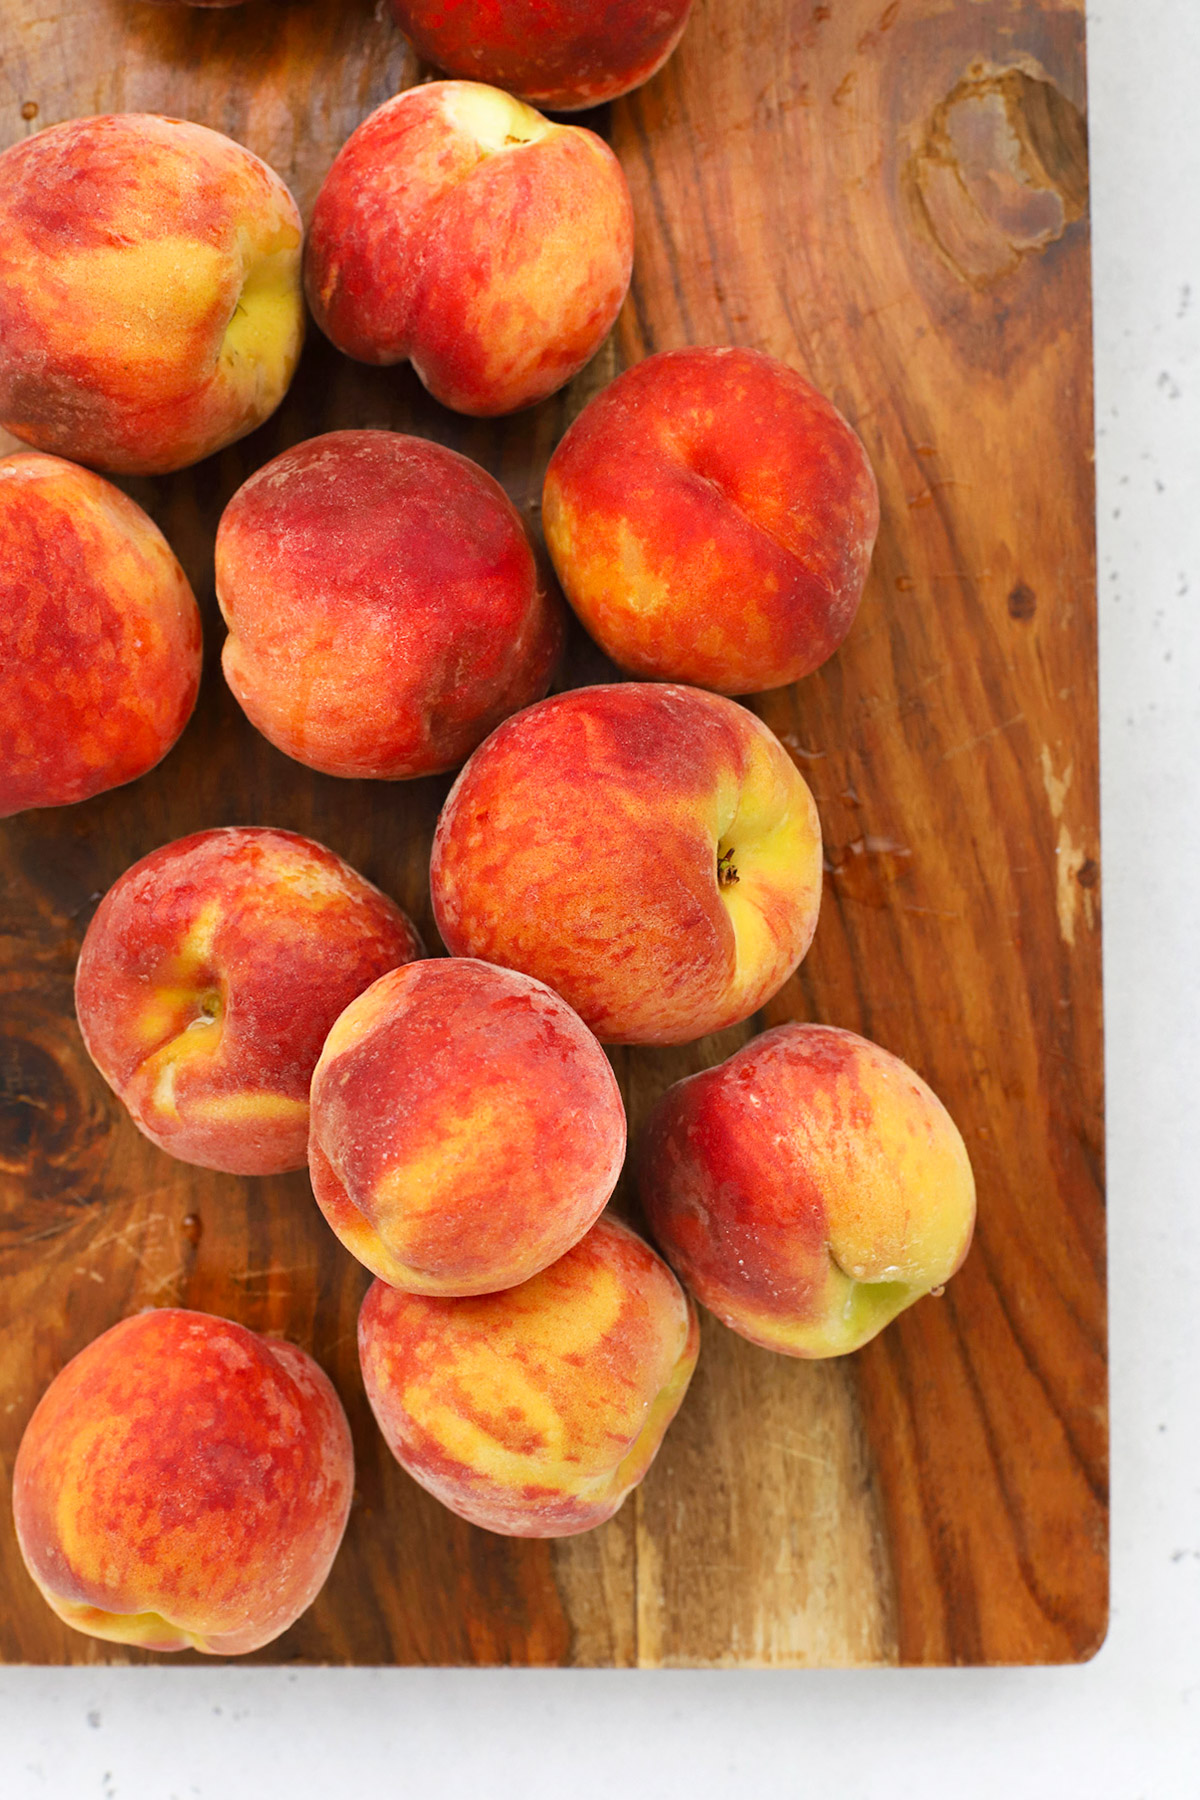 Overhead view of fresh peaches on a wood cutting board